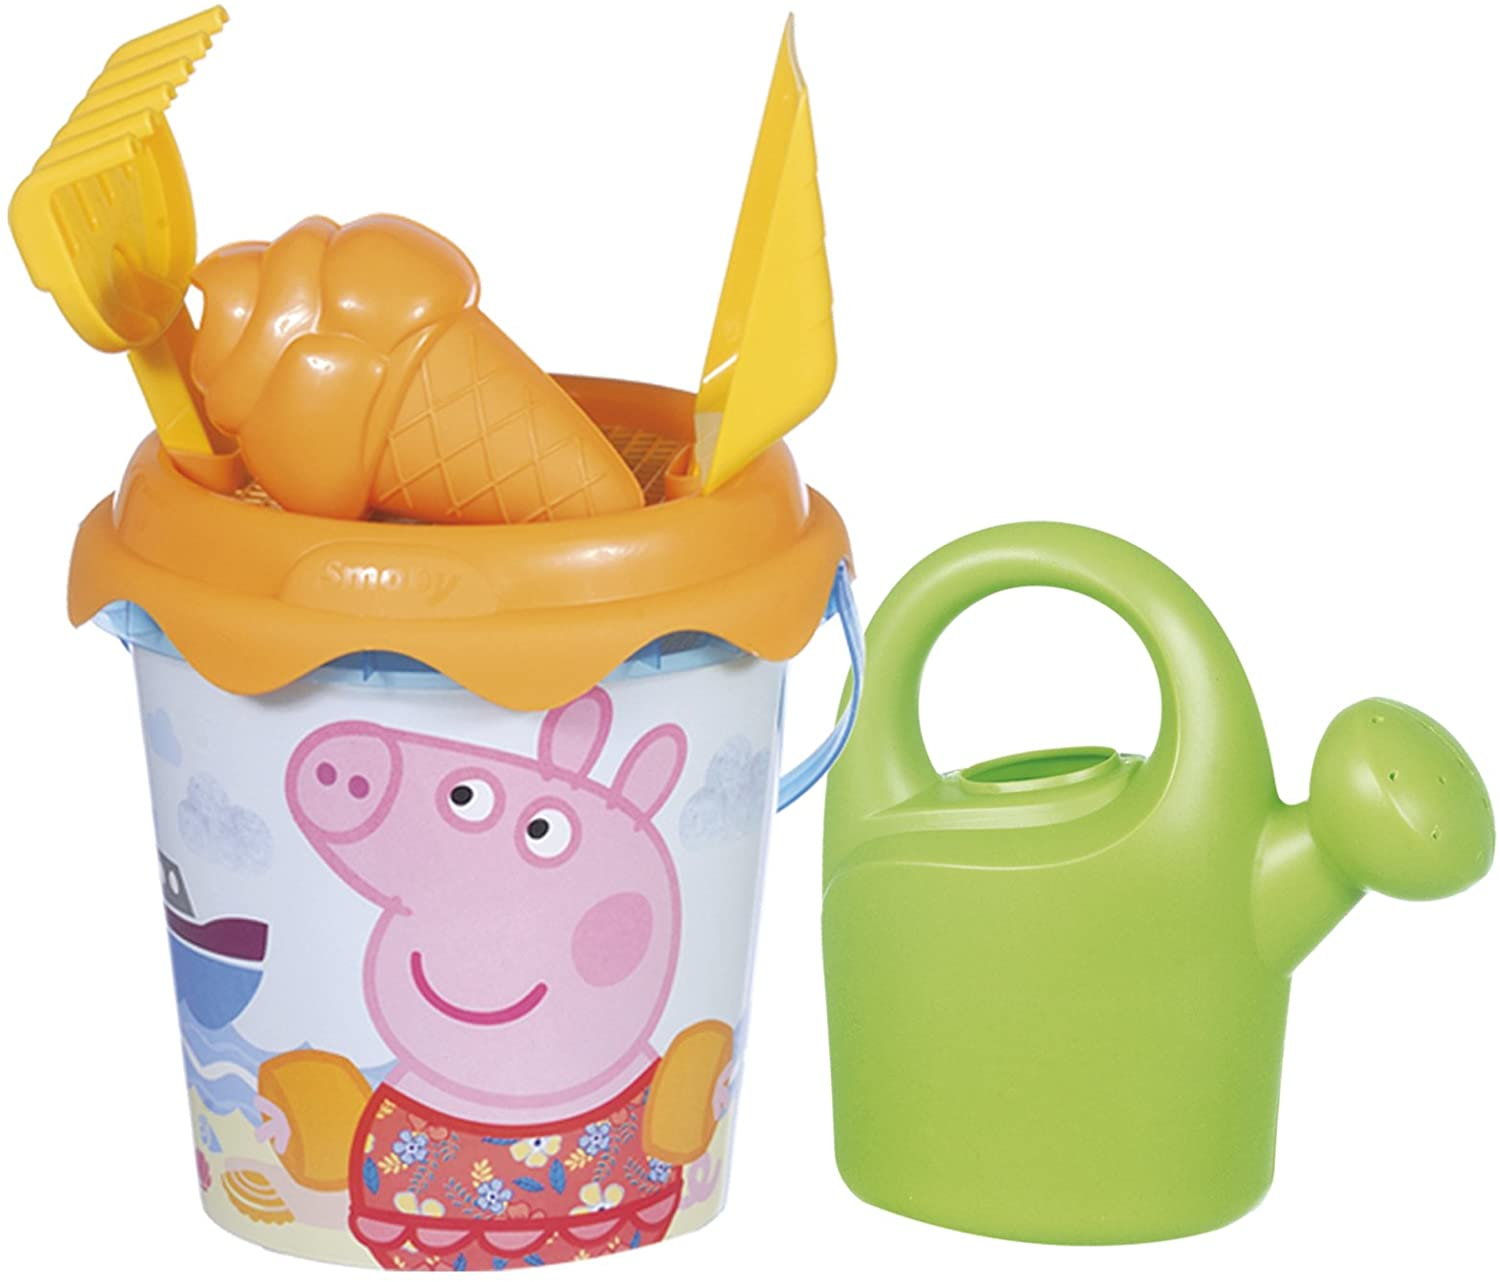 CUBO MM COMPLETO PEPPA PIG 40237